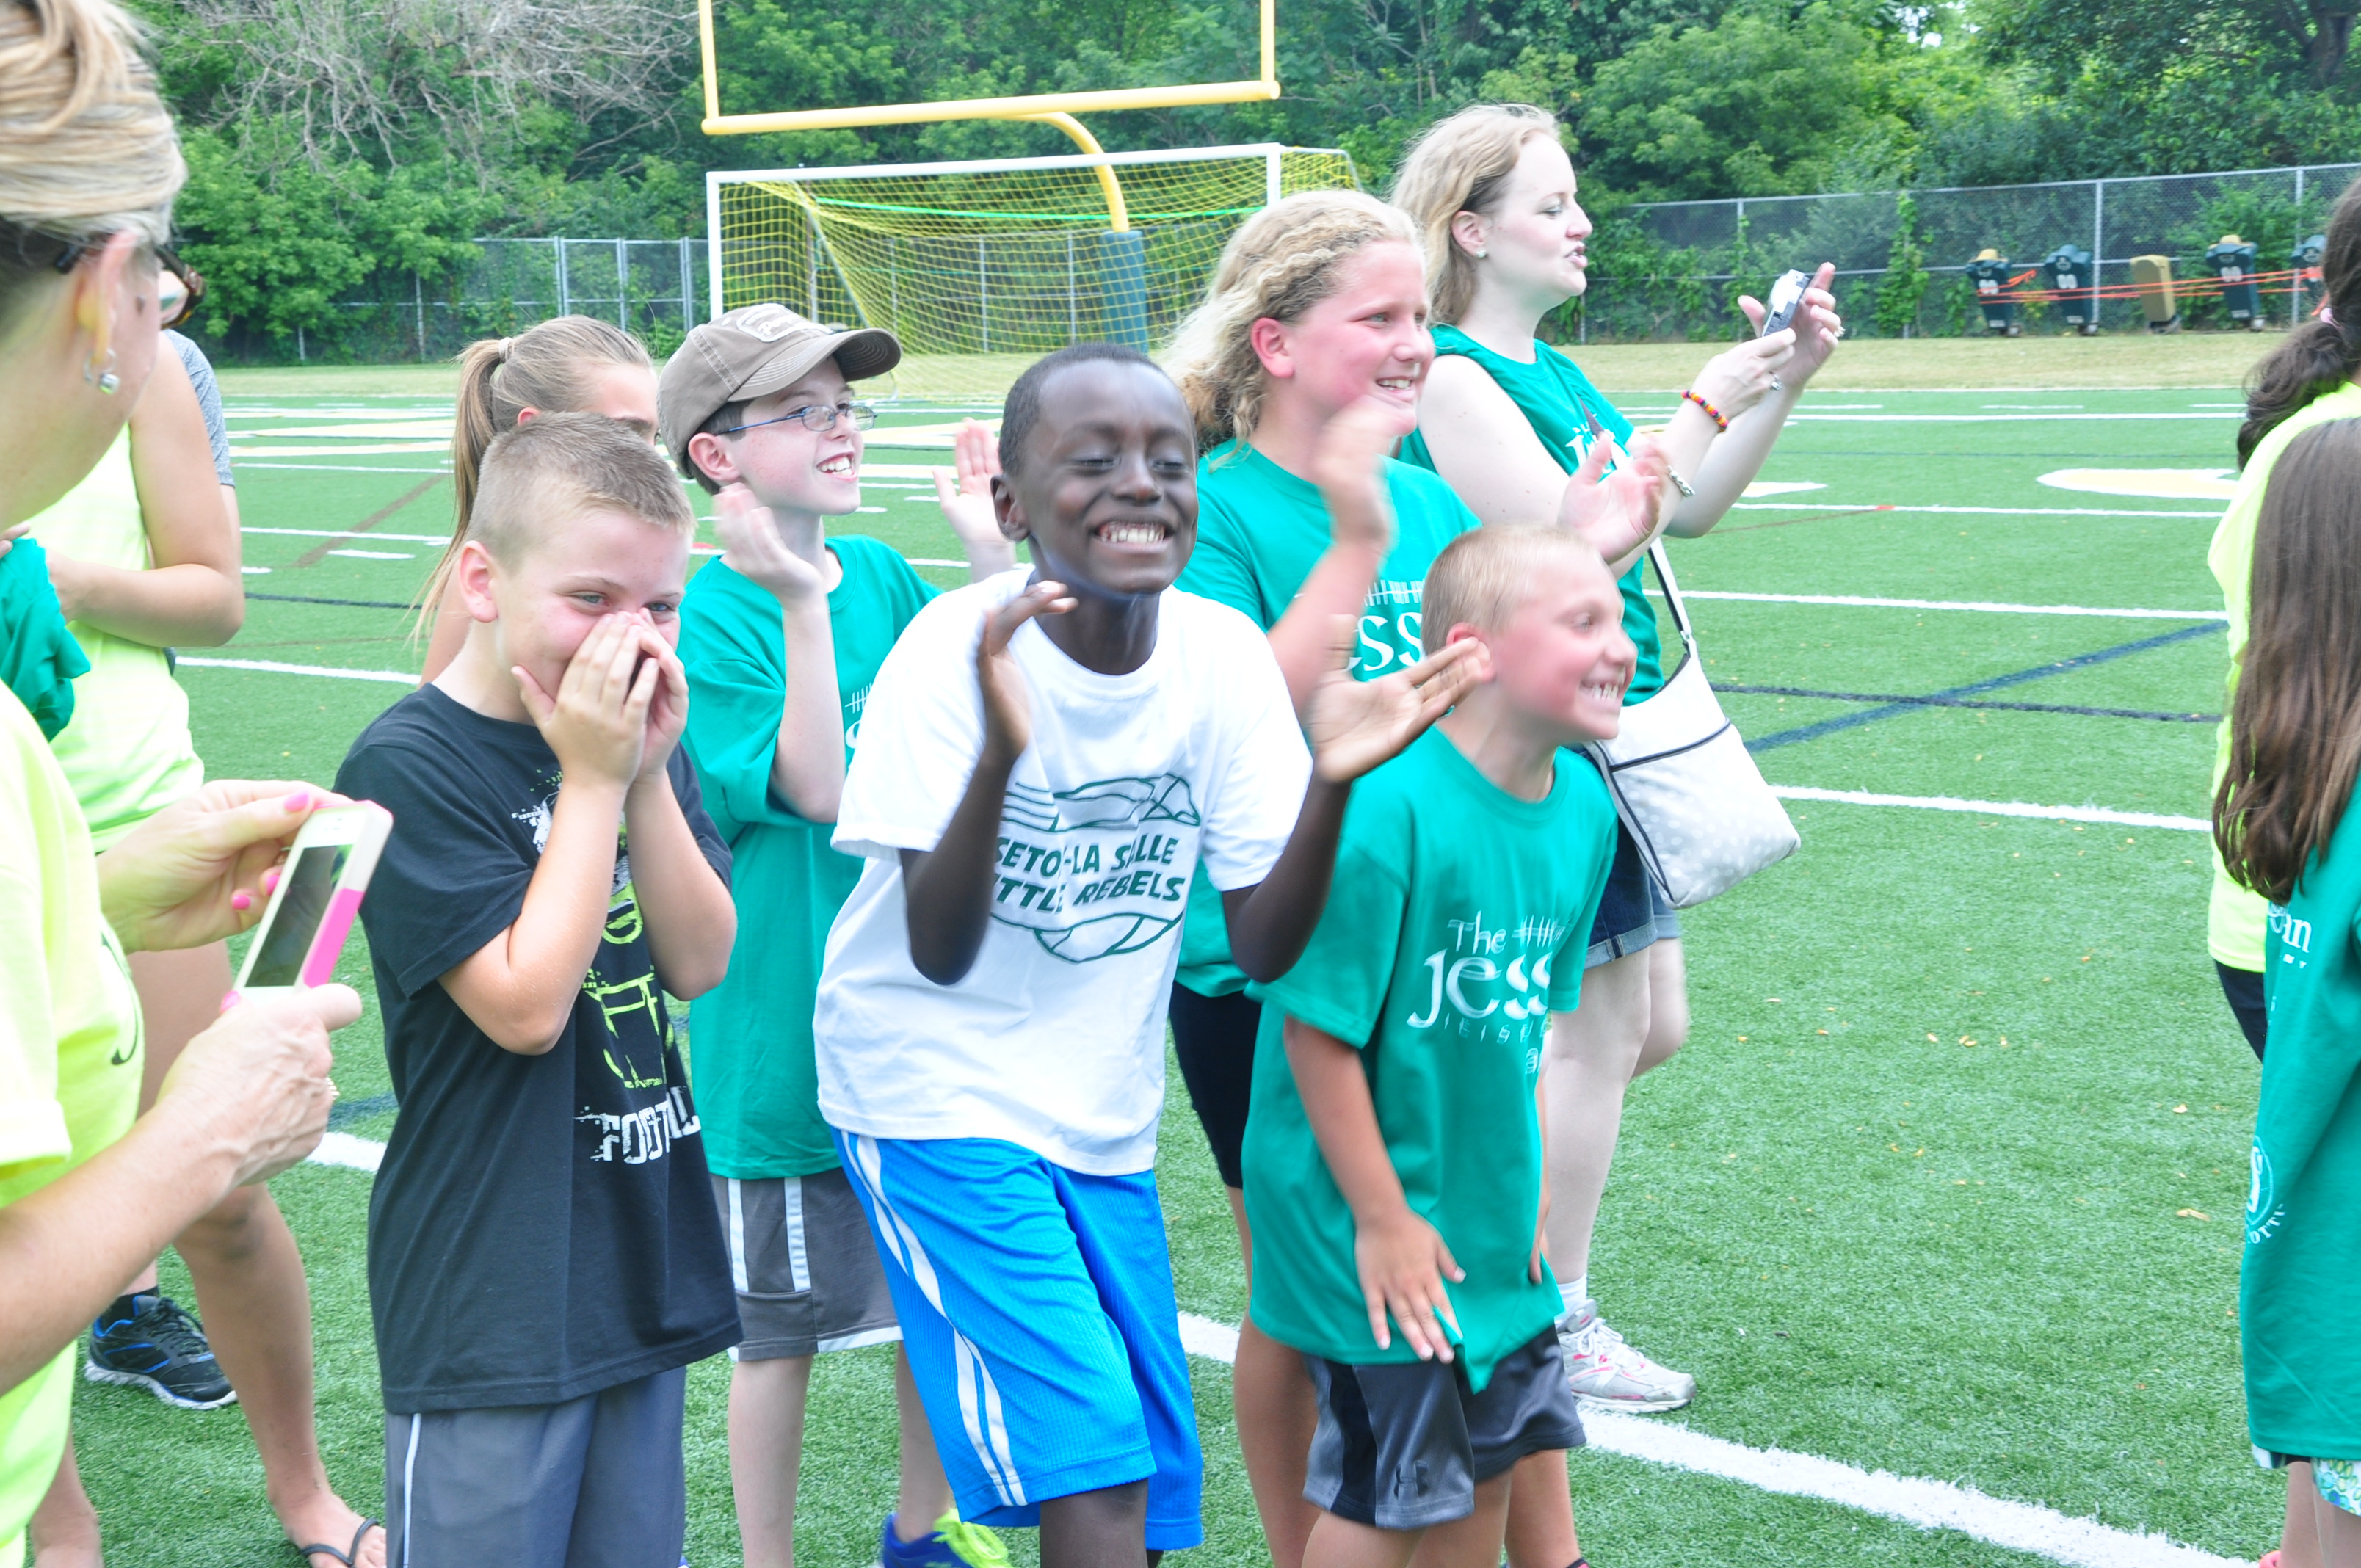 Cheering runners on at the 2014 Jessie Games